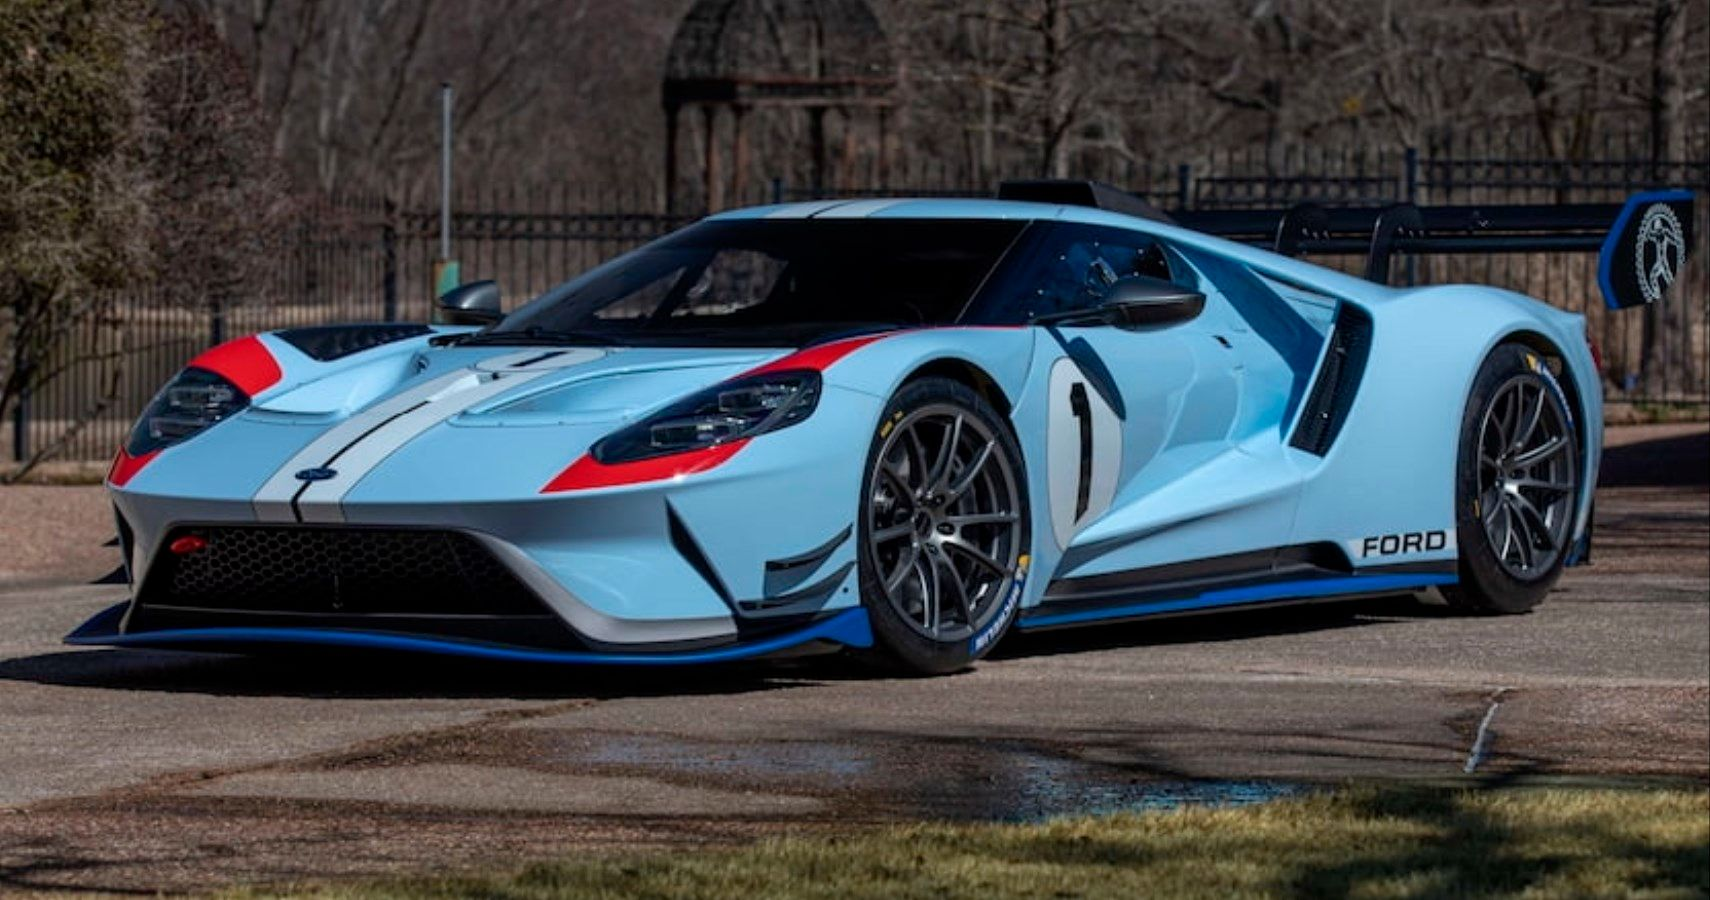 Low Mileage Ken Miles 2020 Ford GT MKII Is Off To Auction